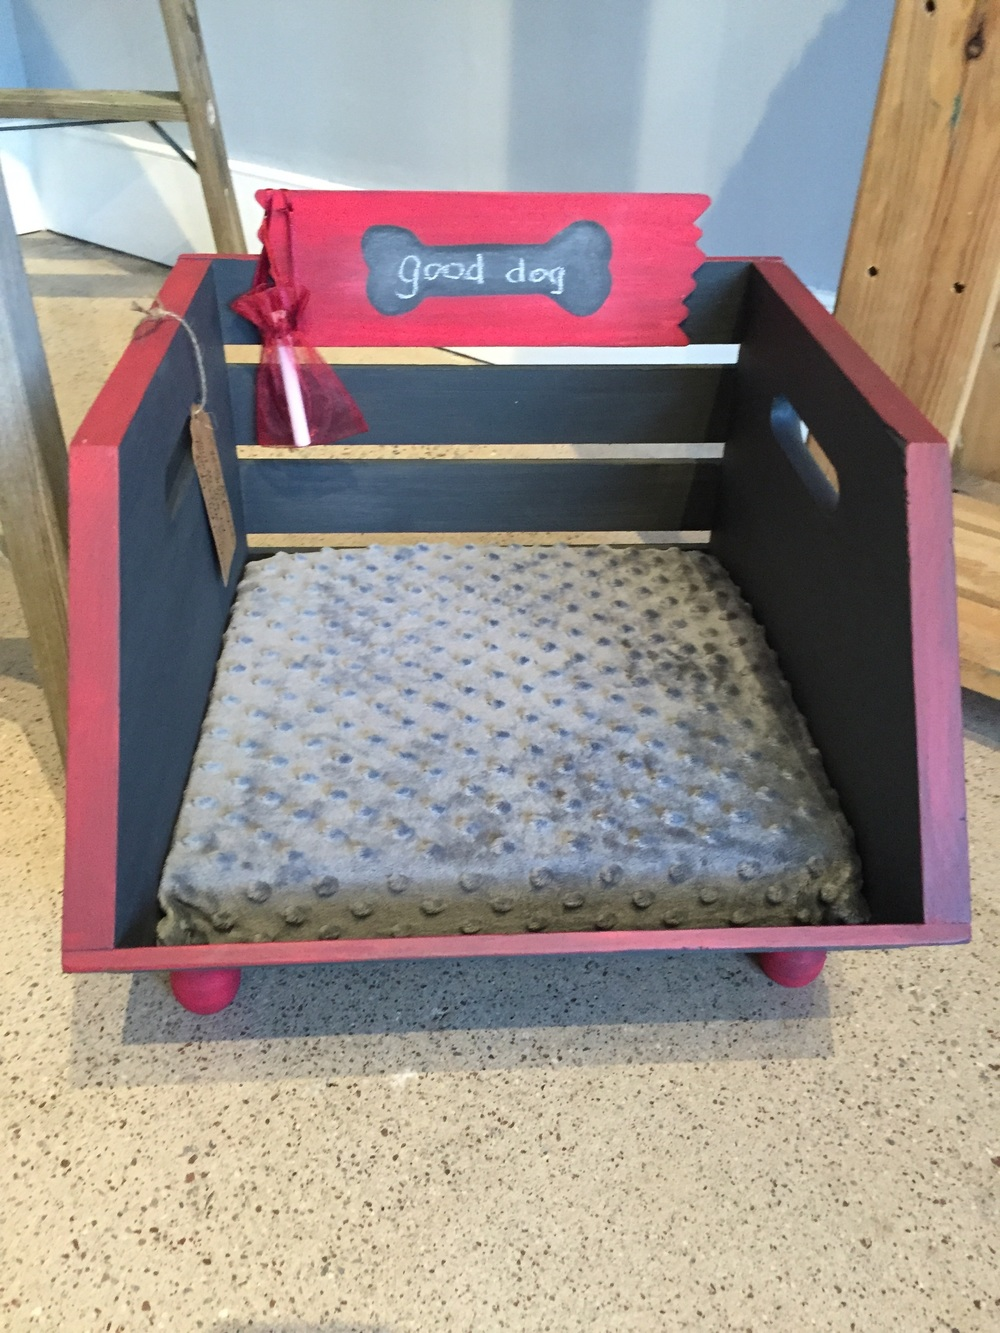 Good Dog Crate - Made from a crate and quite handsome for the macho pet!